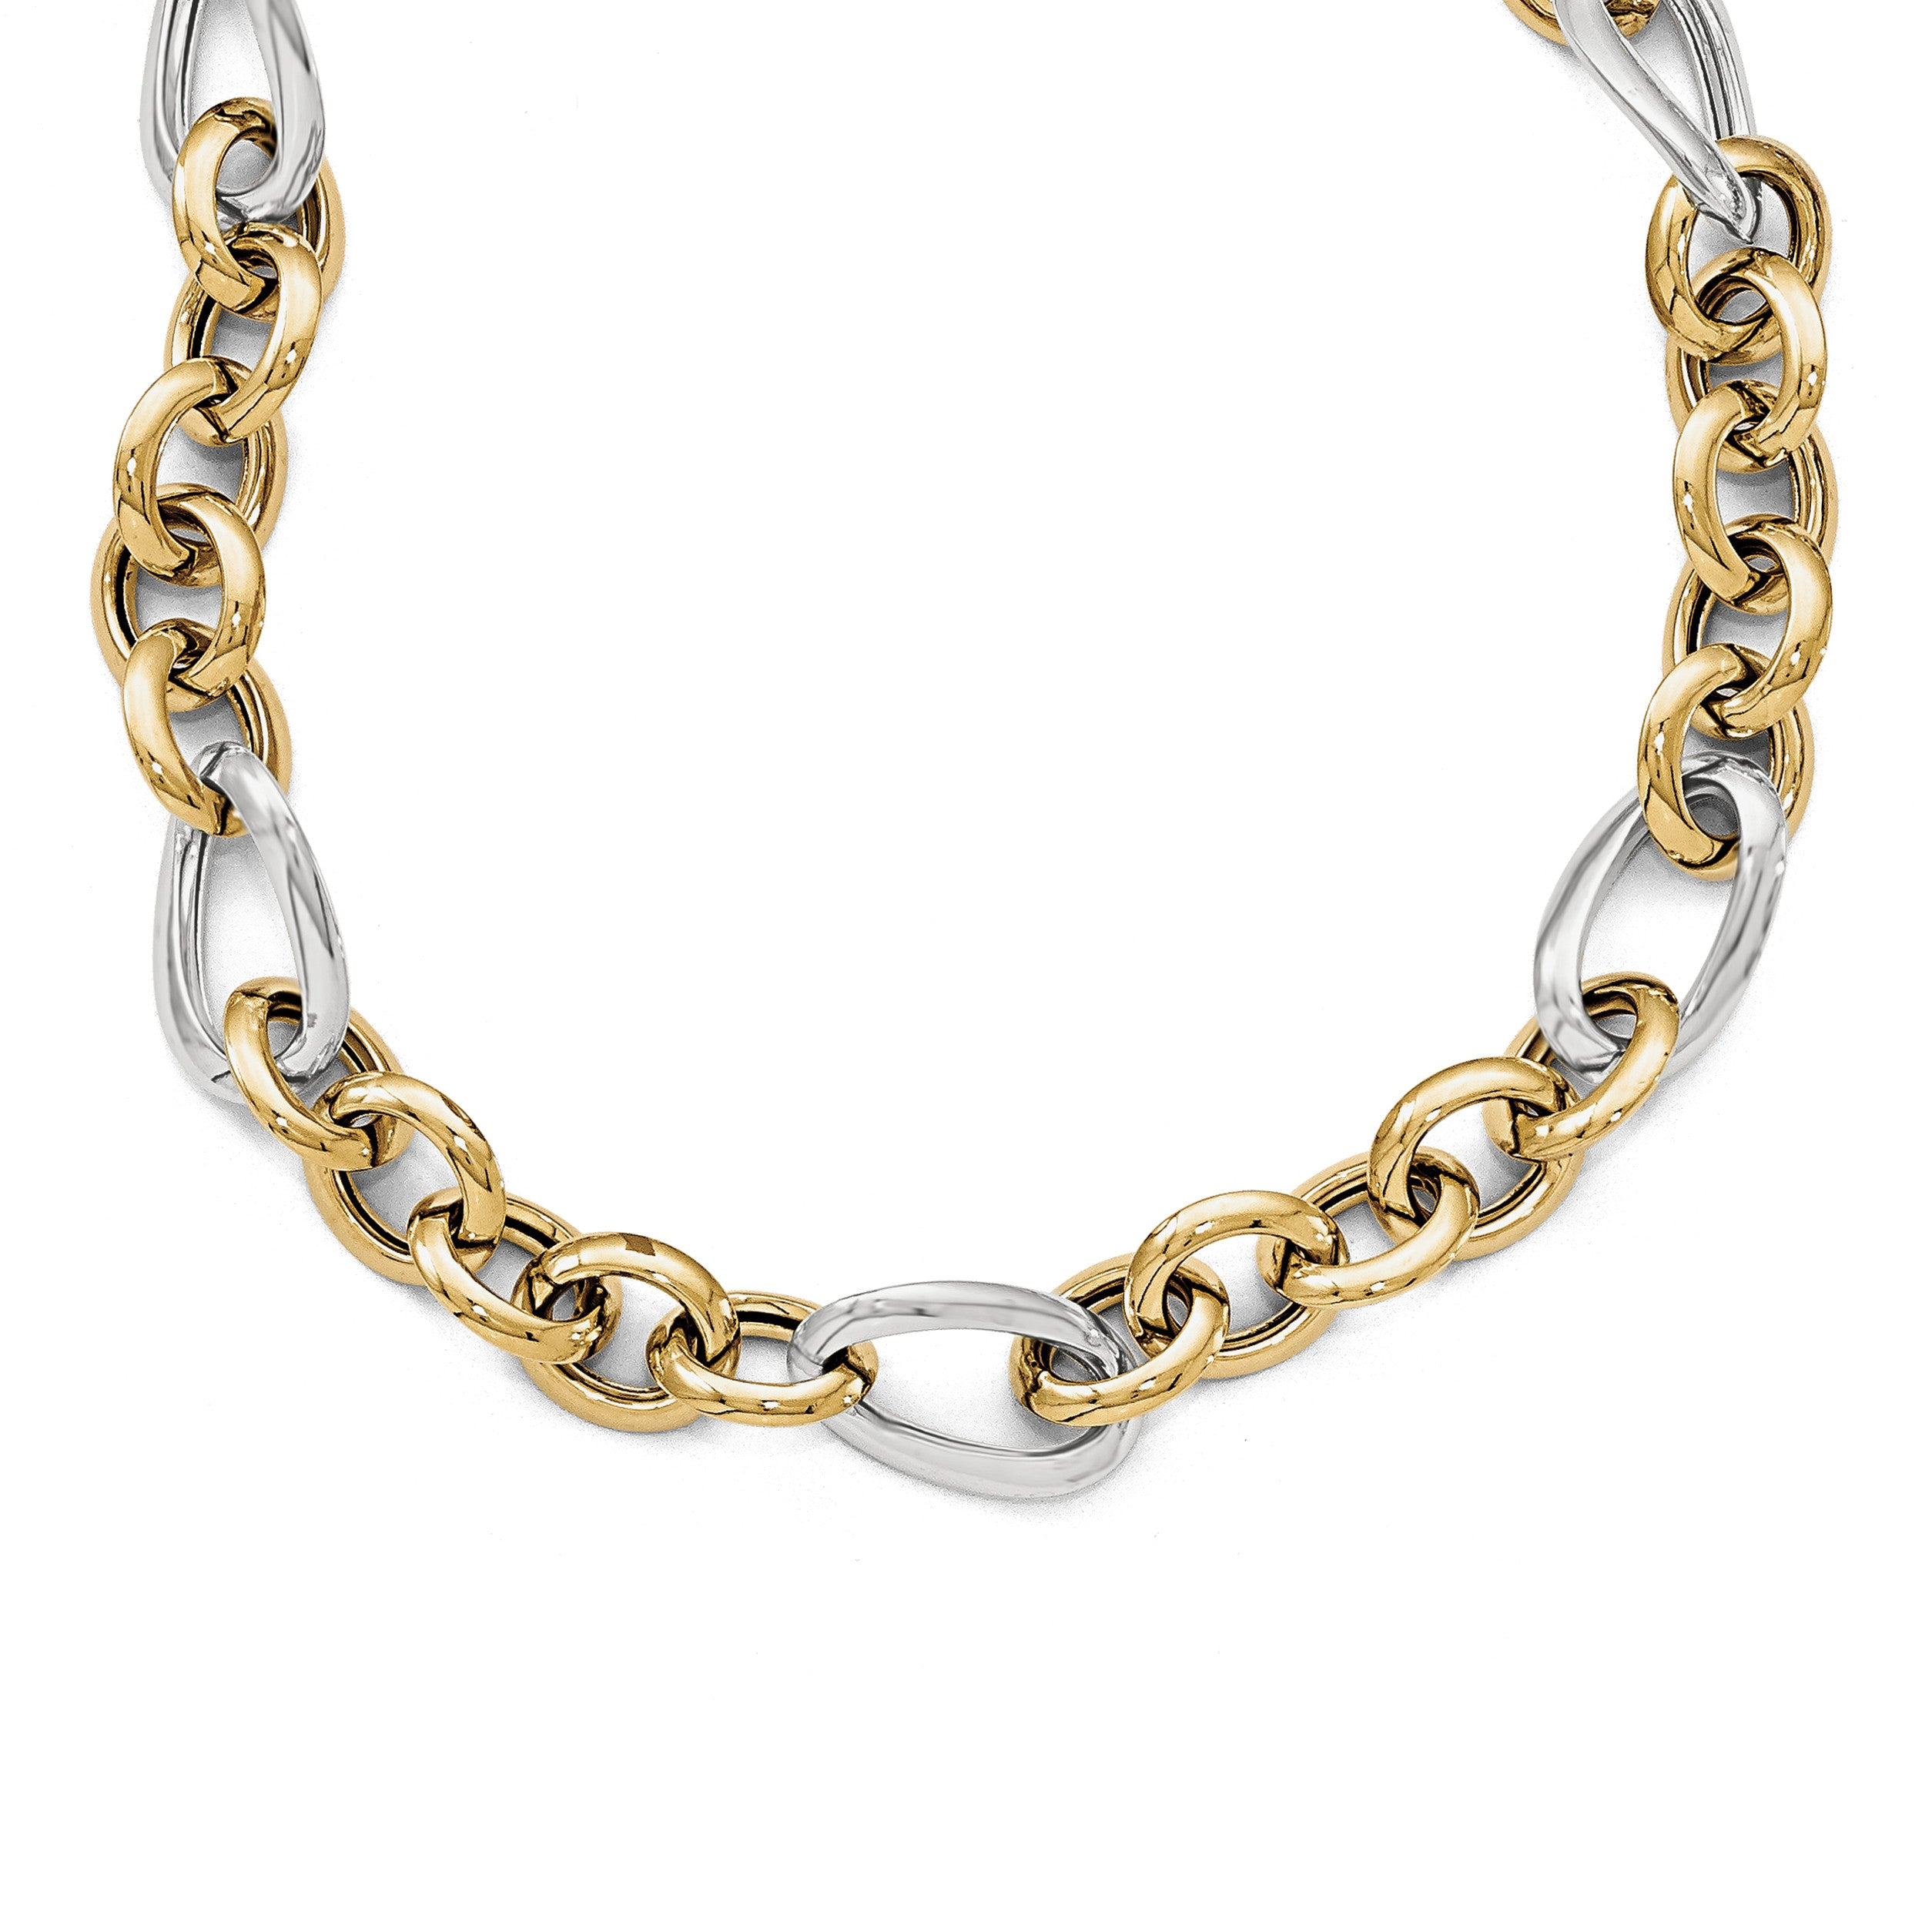 Leslies 14k Two-tone Polished Fancy Link Necklace LF409 - shirin-diamonds